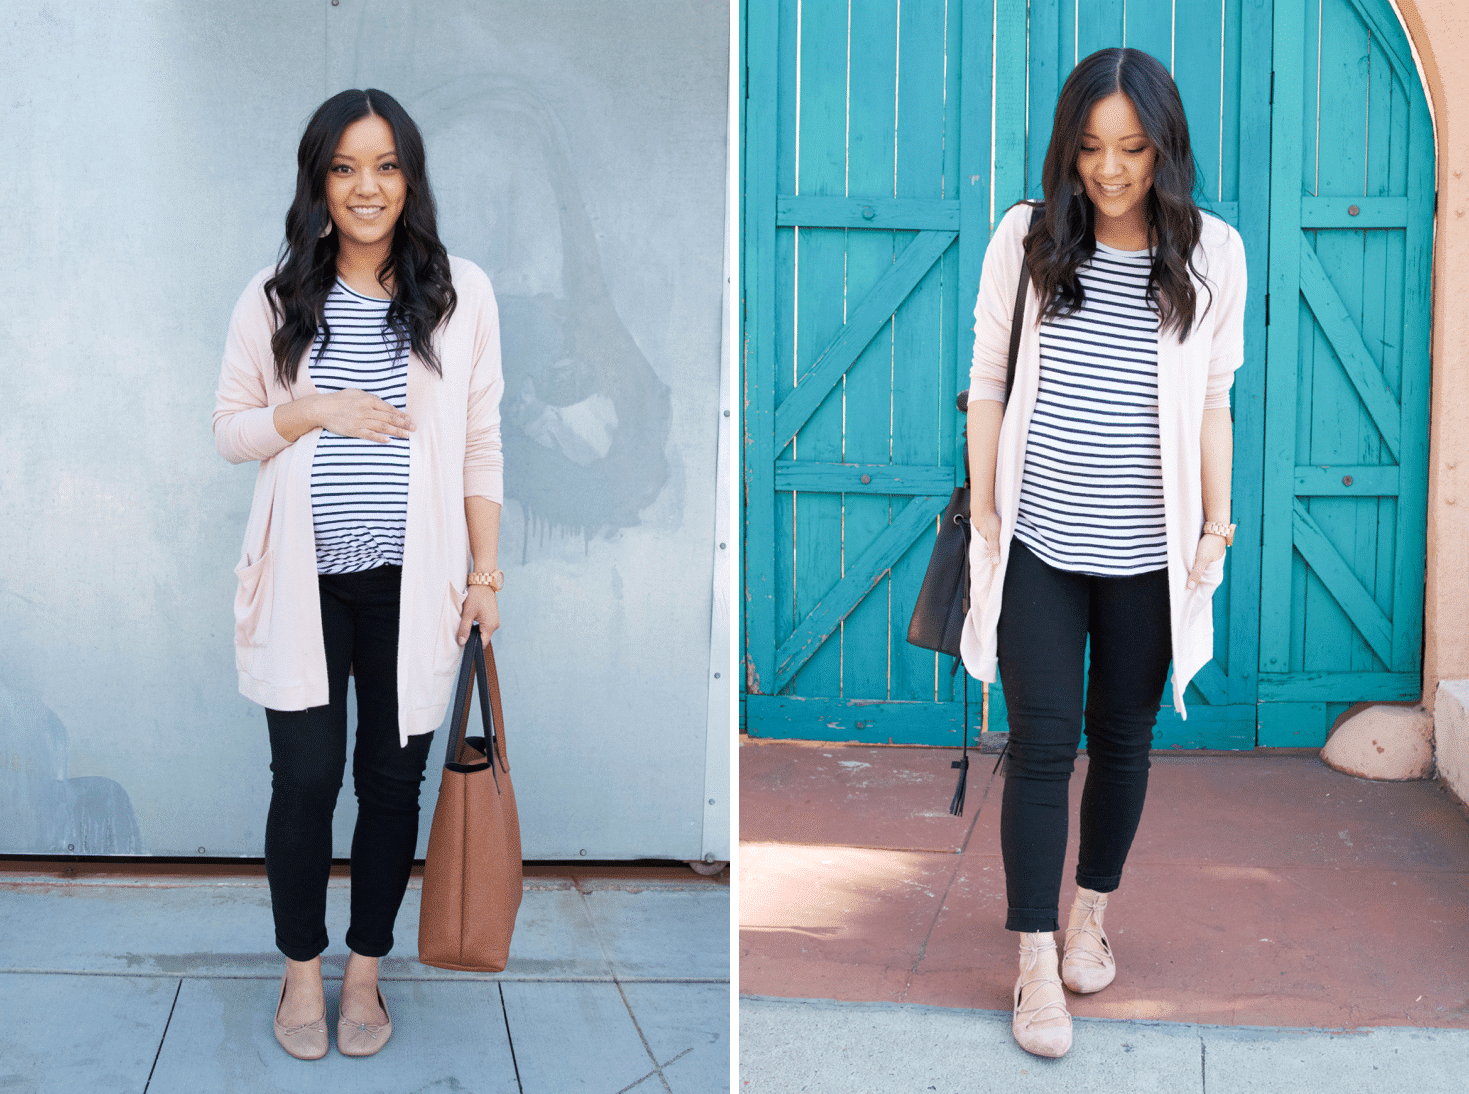 Bookending an Outfit with Colored Flats